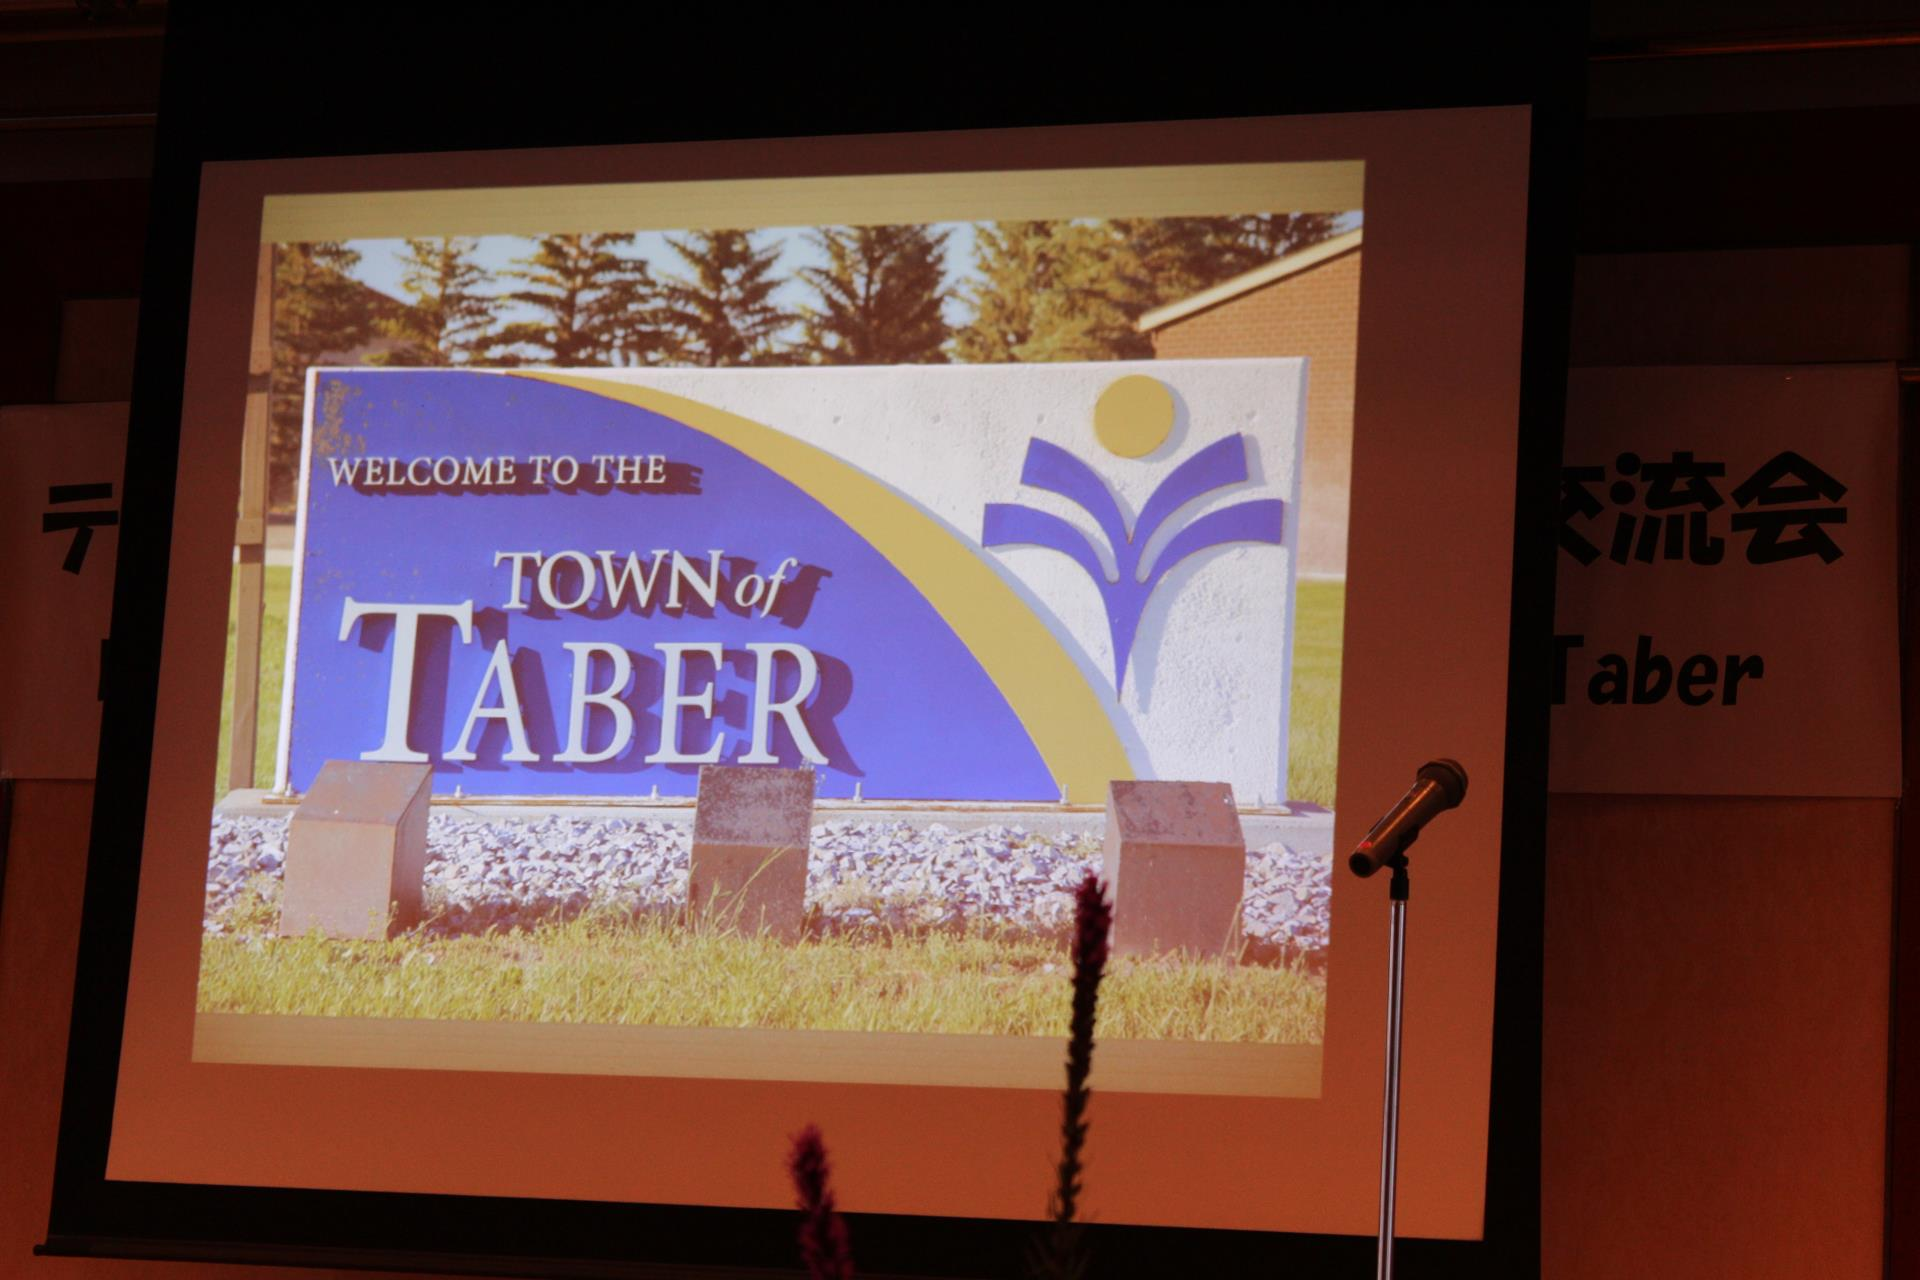 Welcome Presentation 2016 The City of Higashiomi welcomed the 2016 Taber delegates with a familiar sight from home